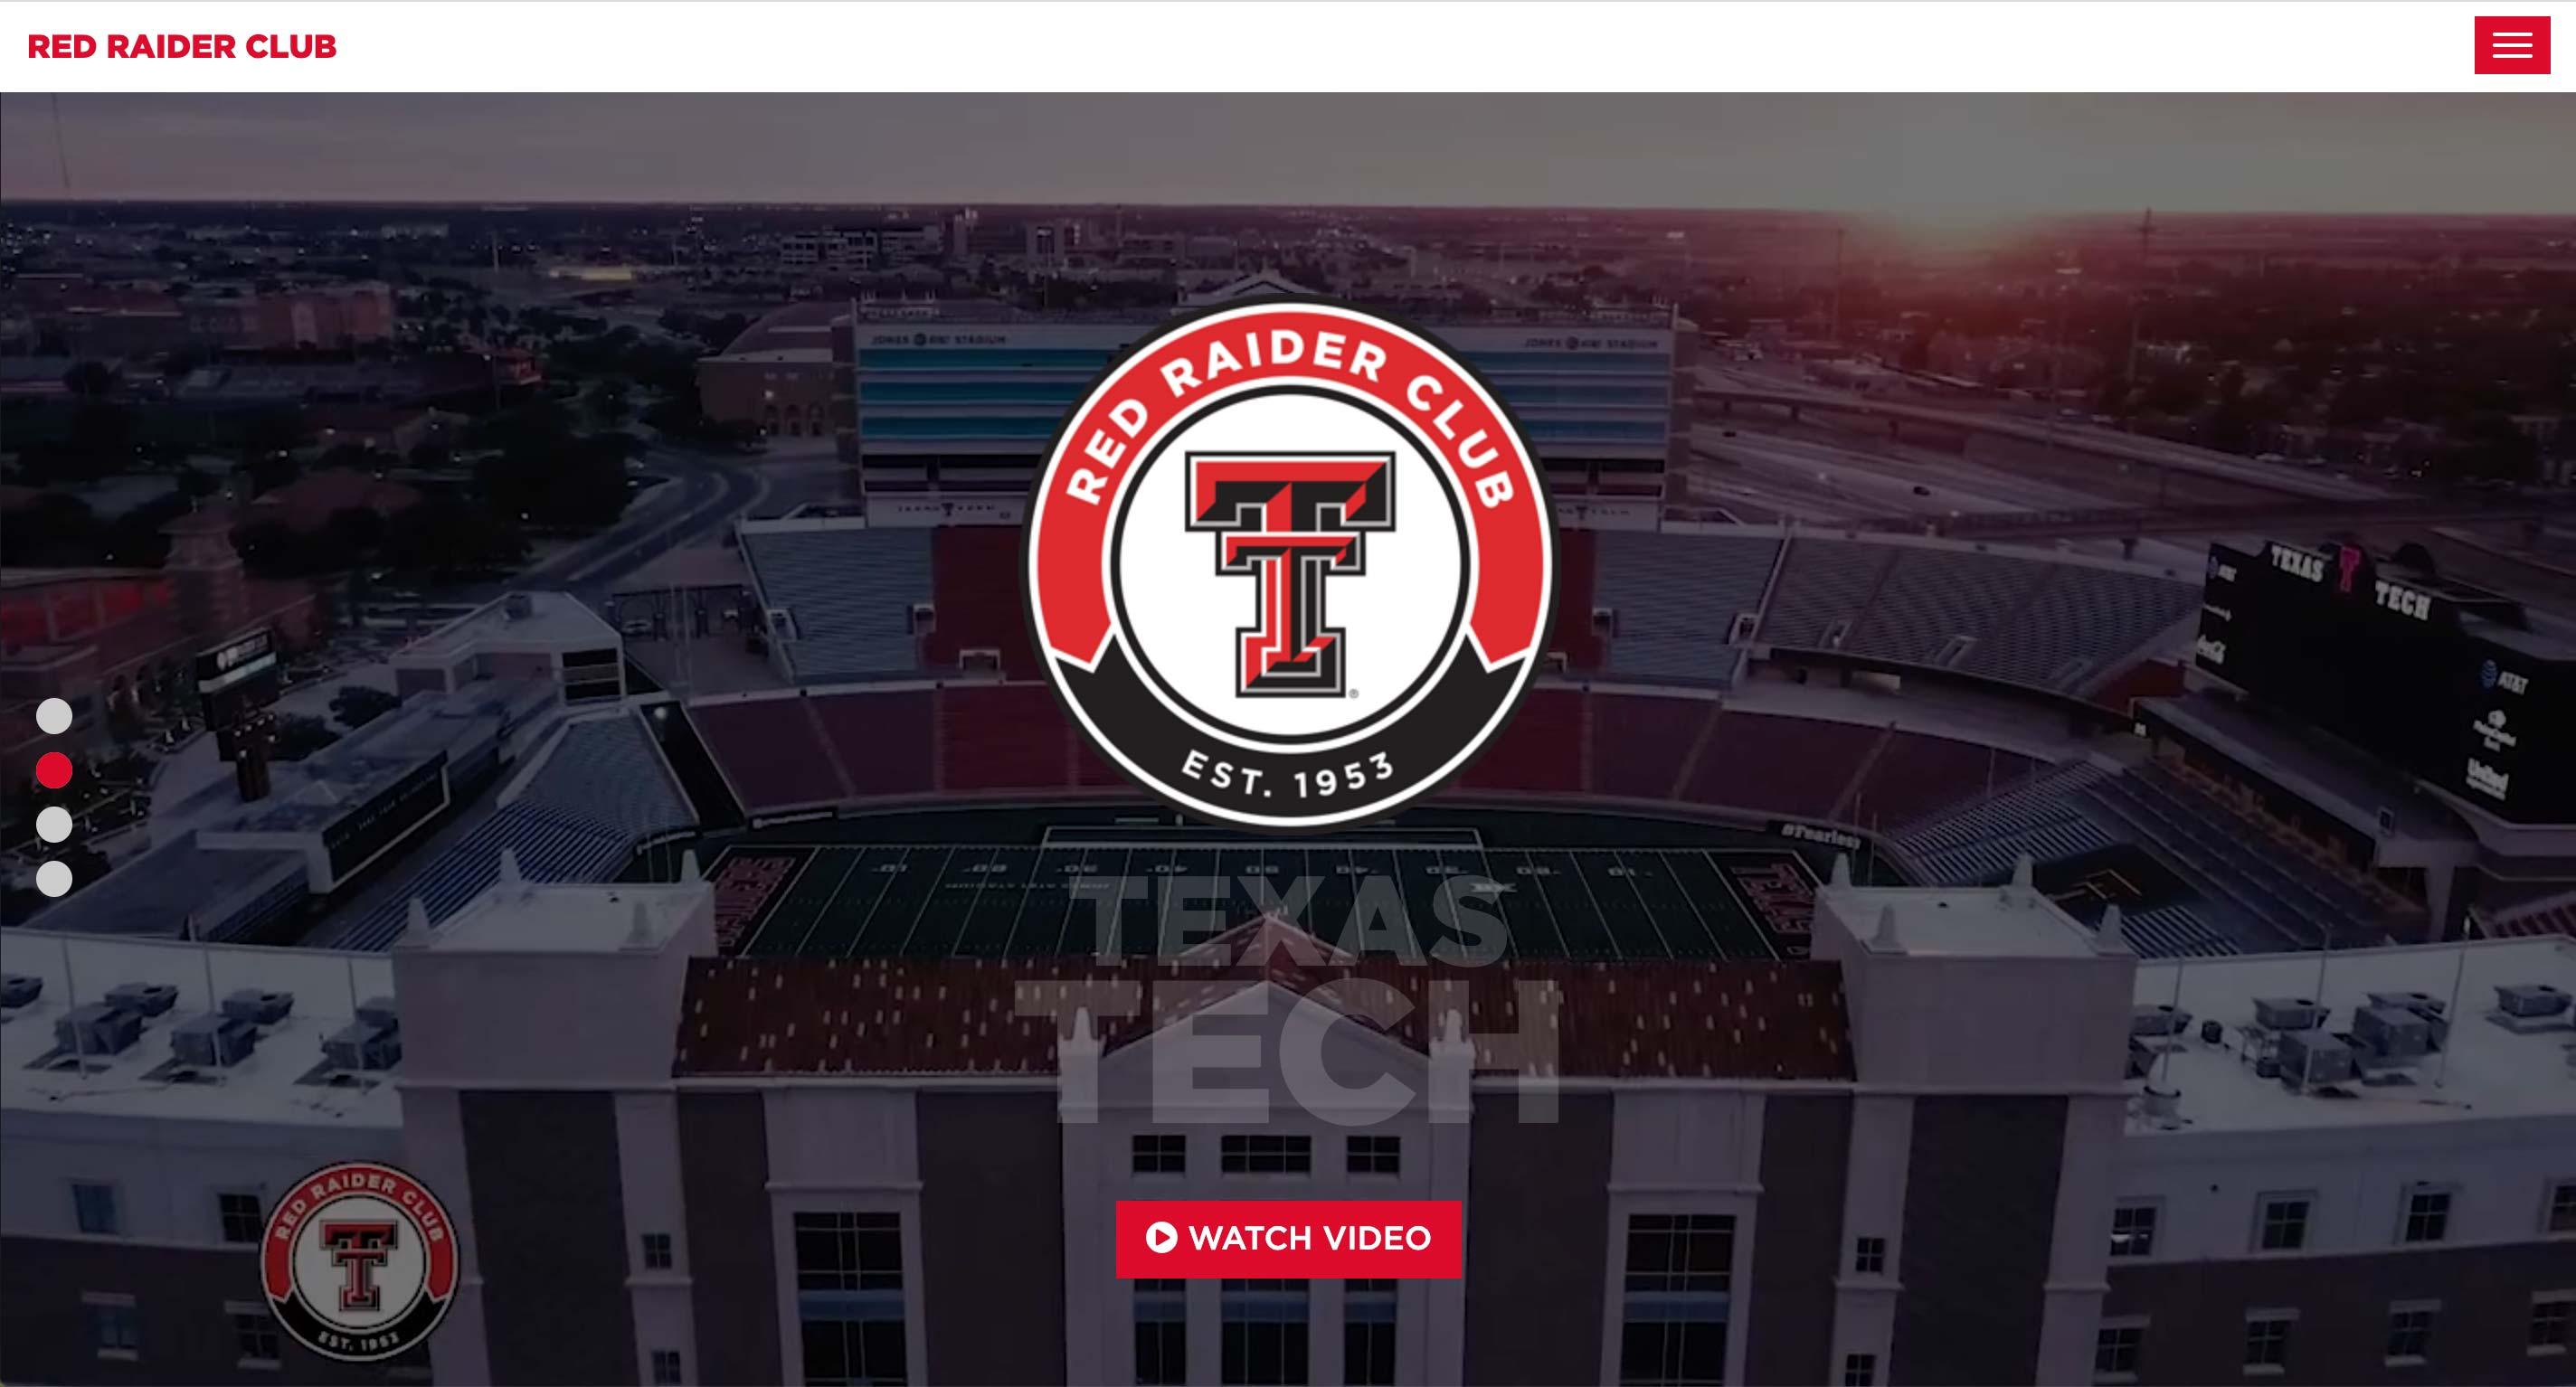 Red Raider Club Fundraising Website | <a href='http://redraiderclub.com/' target='_blank'>Visit Site <i class='nc-icon-glyph arrows-1_share-91'></i></a><br><span>Texas Tech University</span>